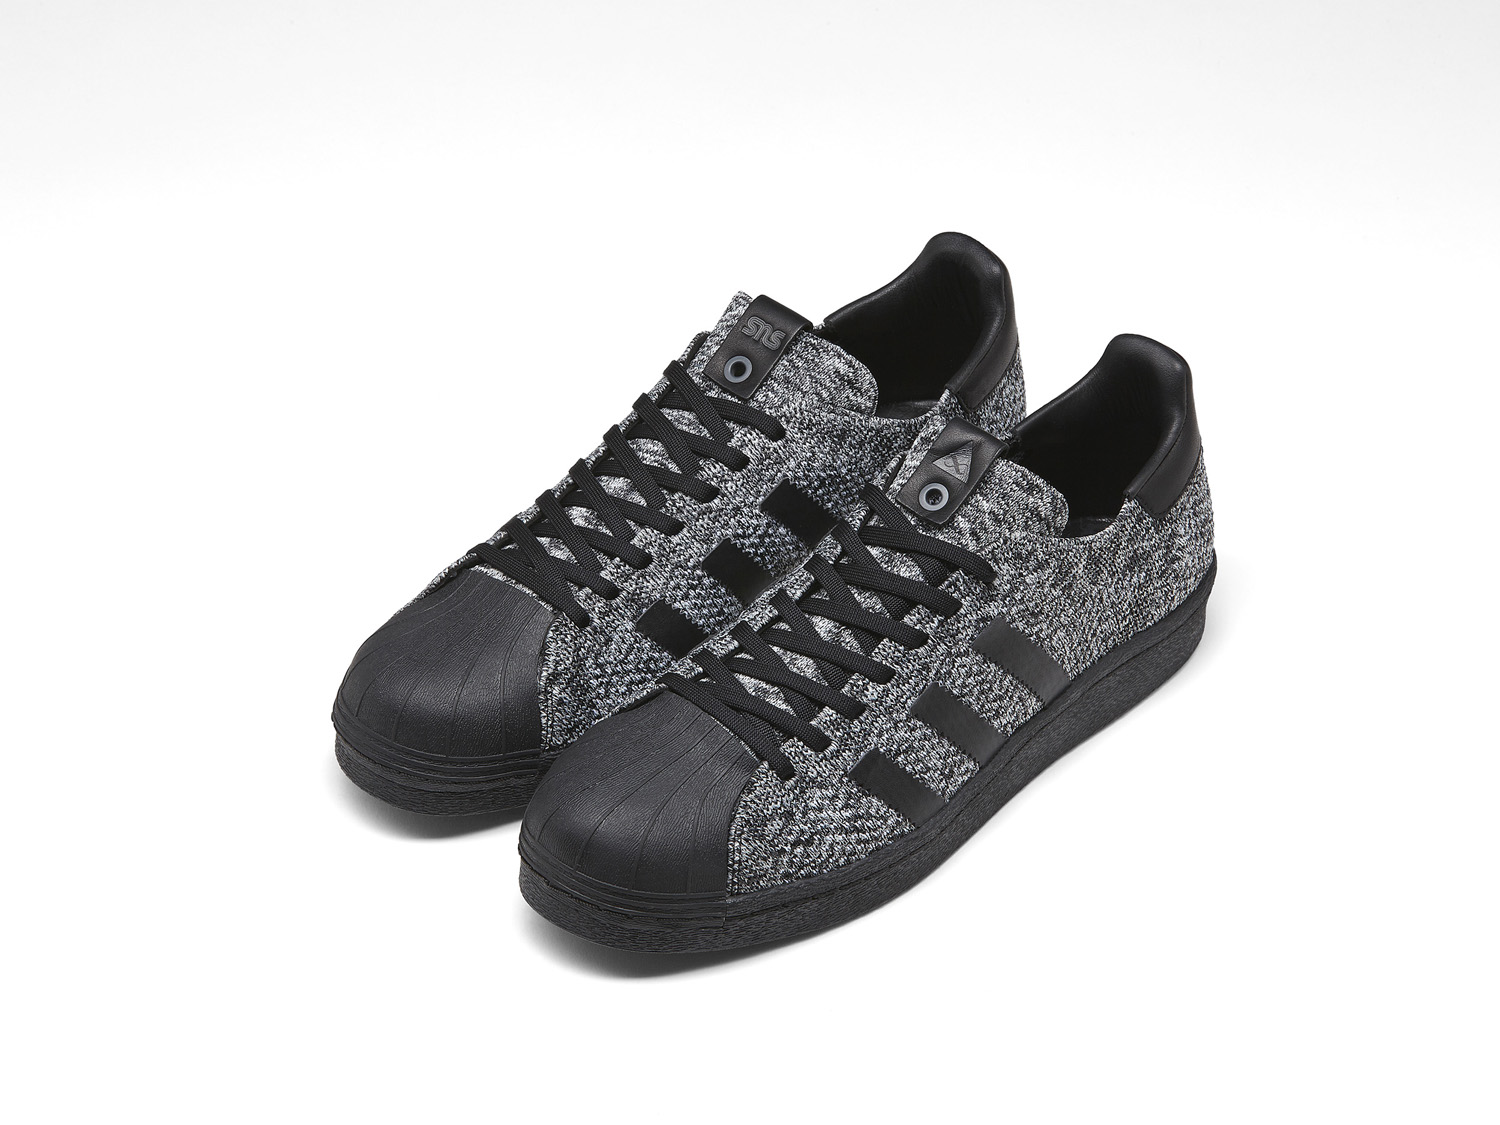 Adidas Superstar Boost Sns Sosiale Status cndeJTMF